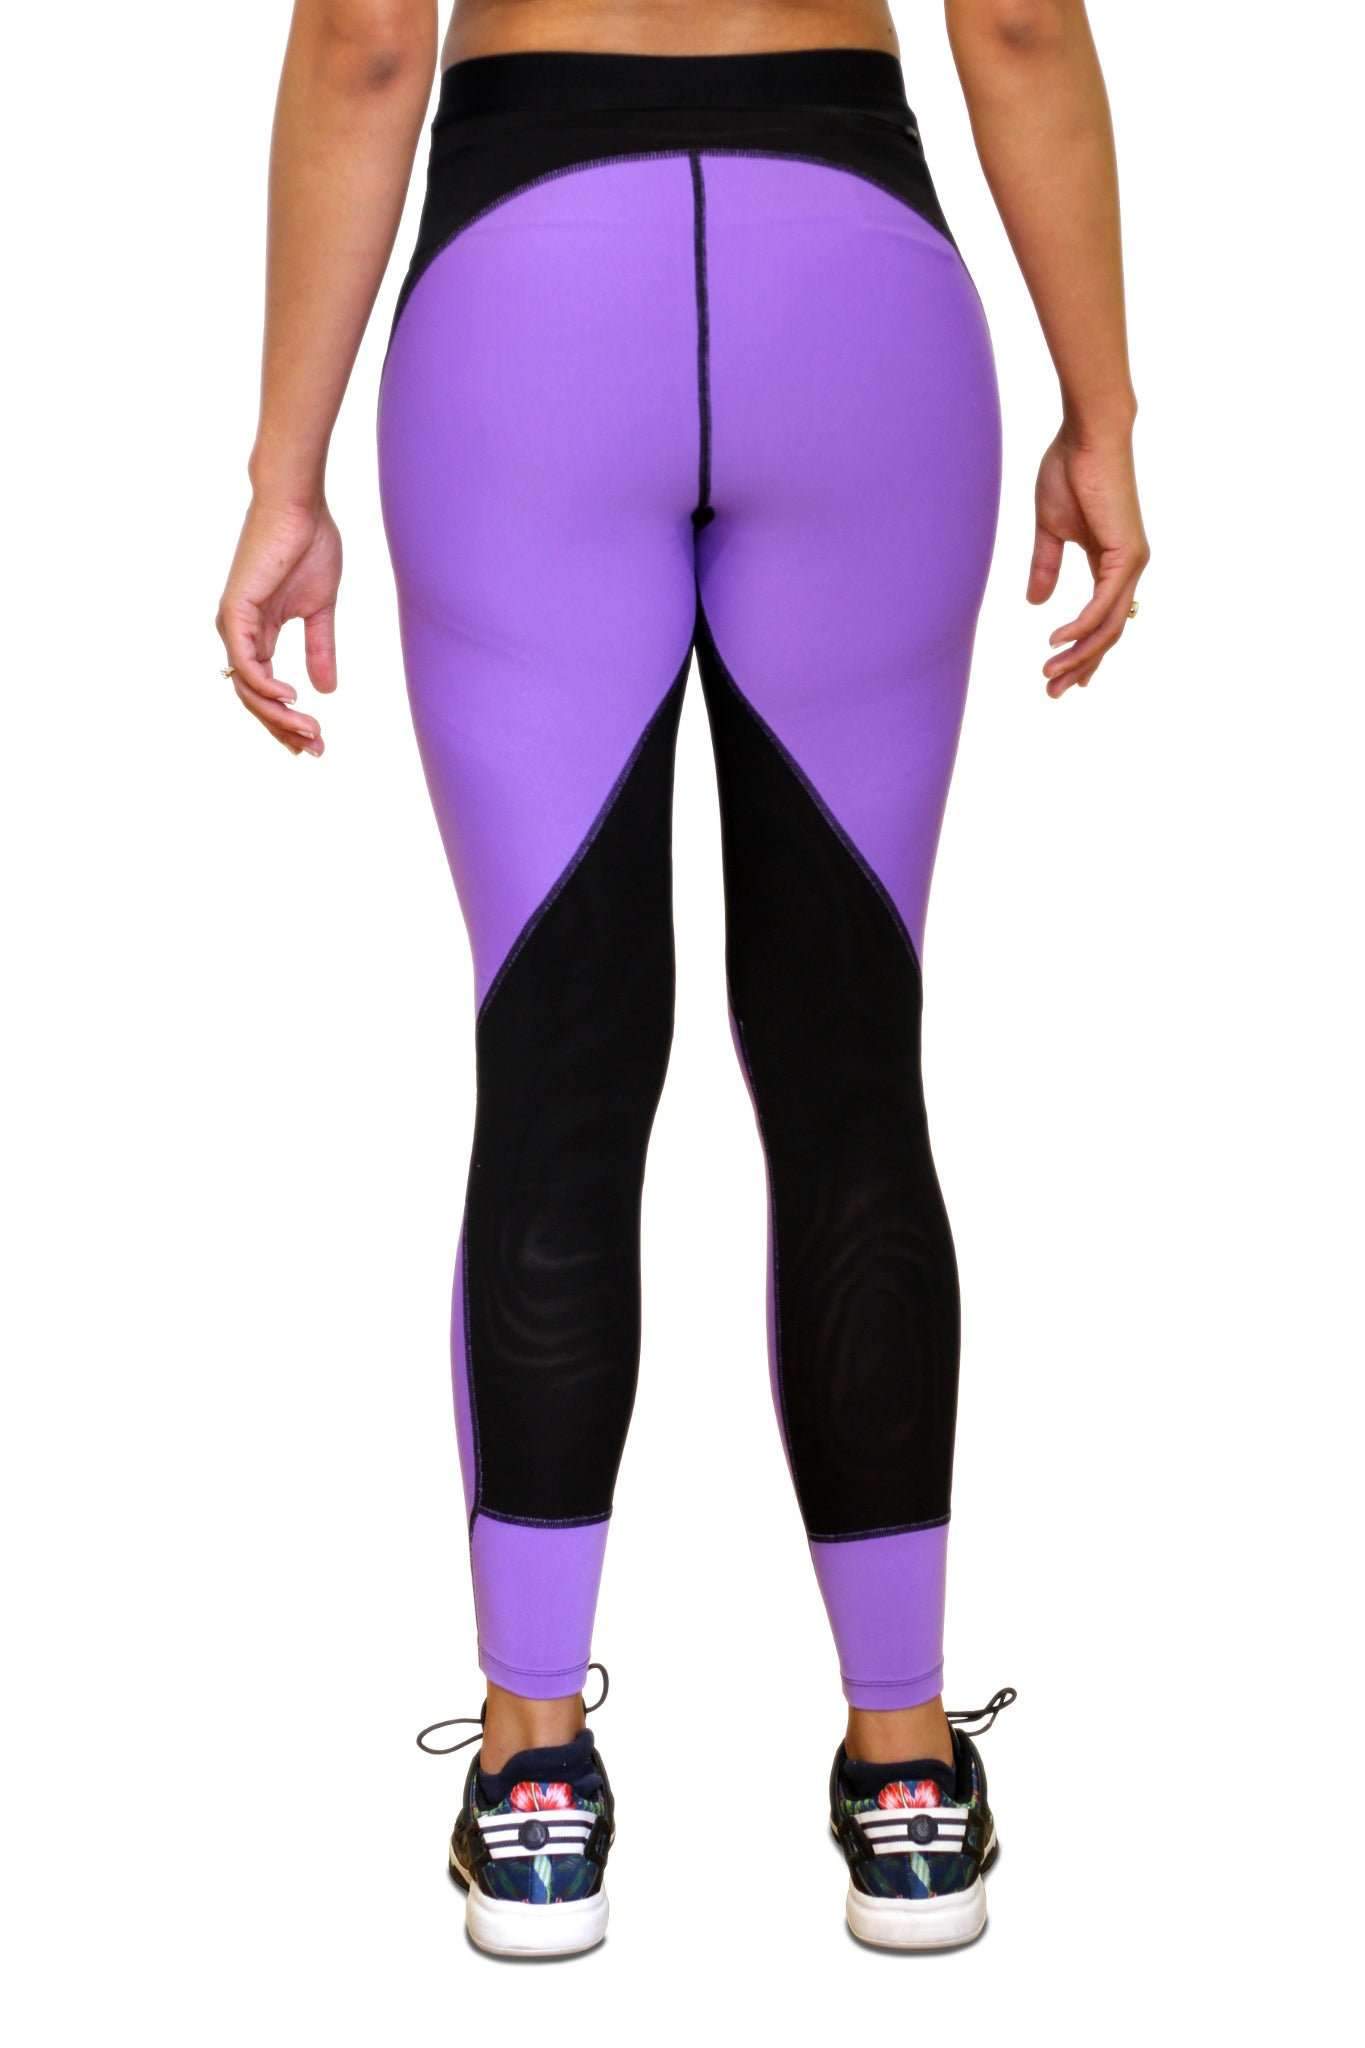 Pro Resistance Tights for Women - Electric Purple